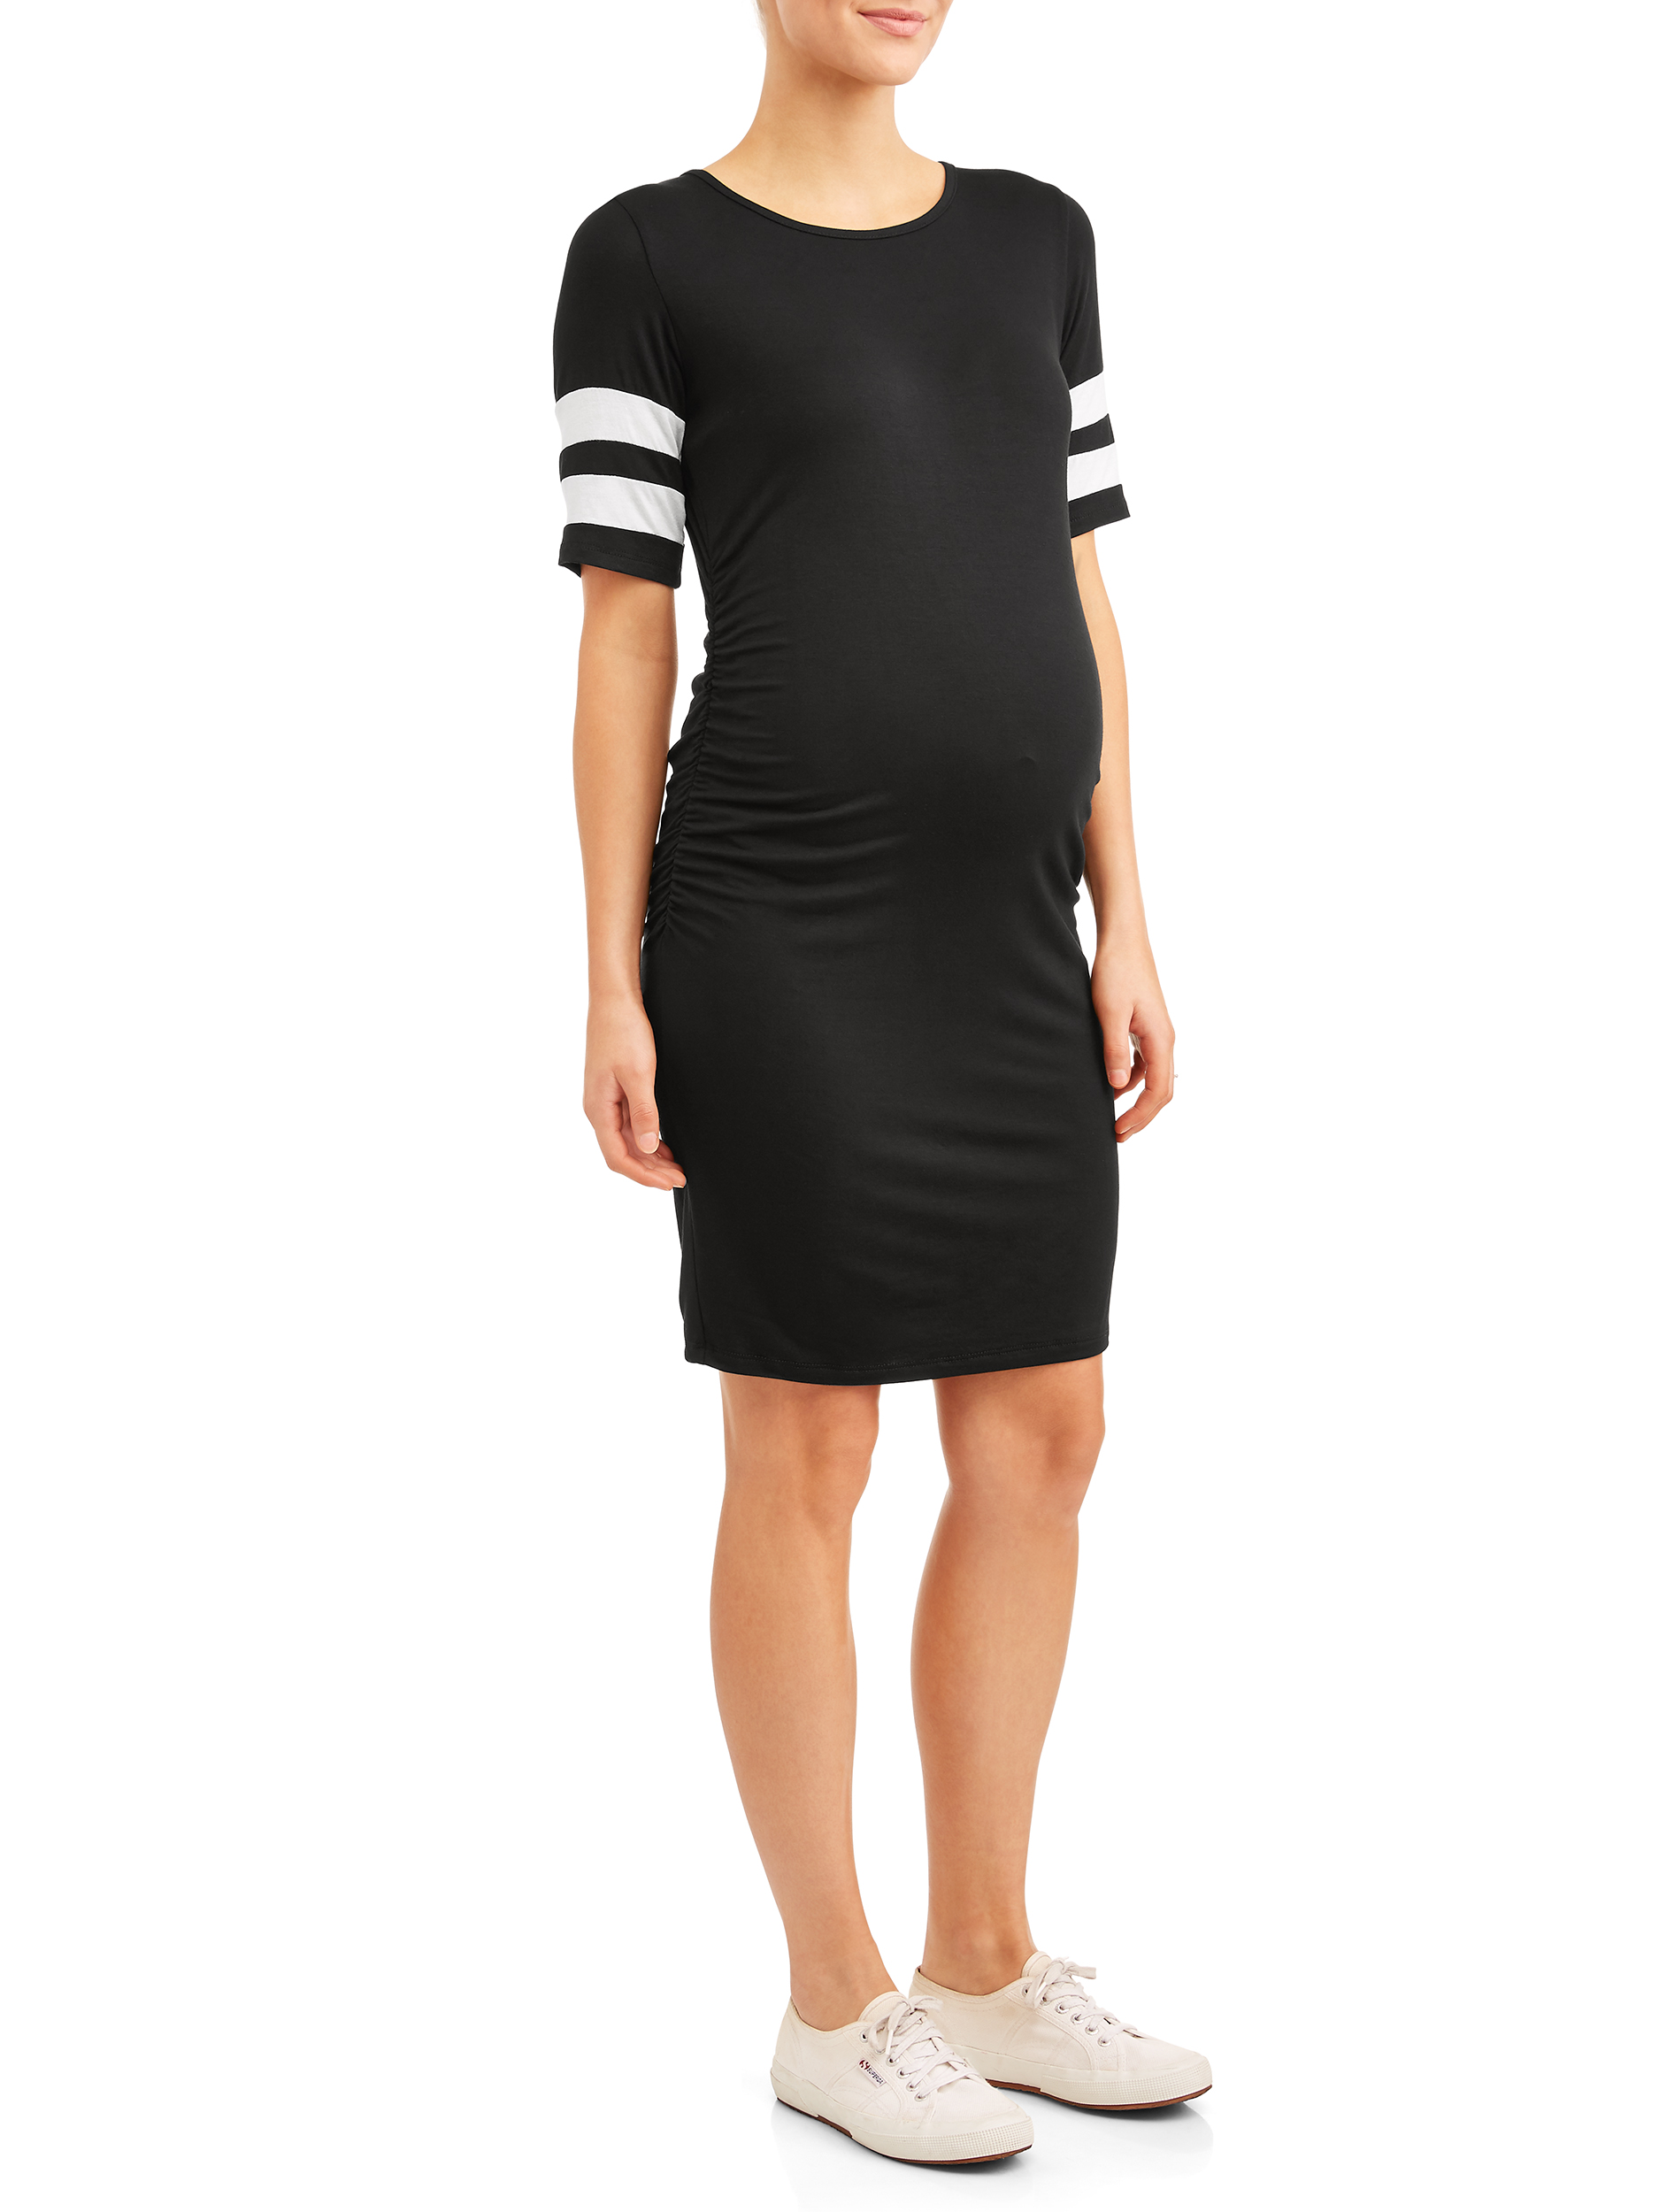 Materntiy Striped Sleeve Body Con Midi Dress